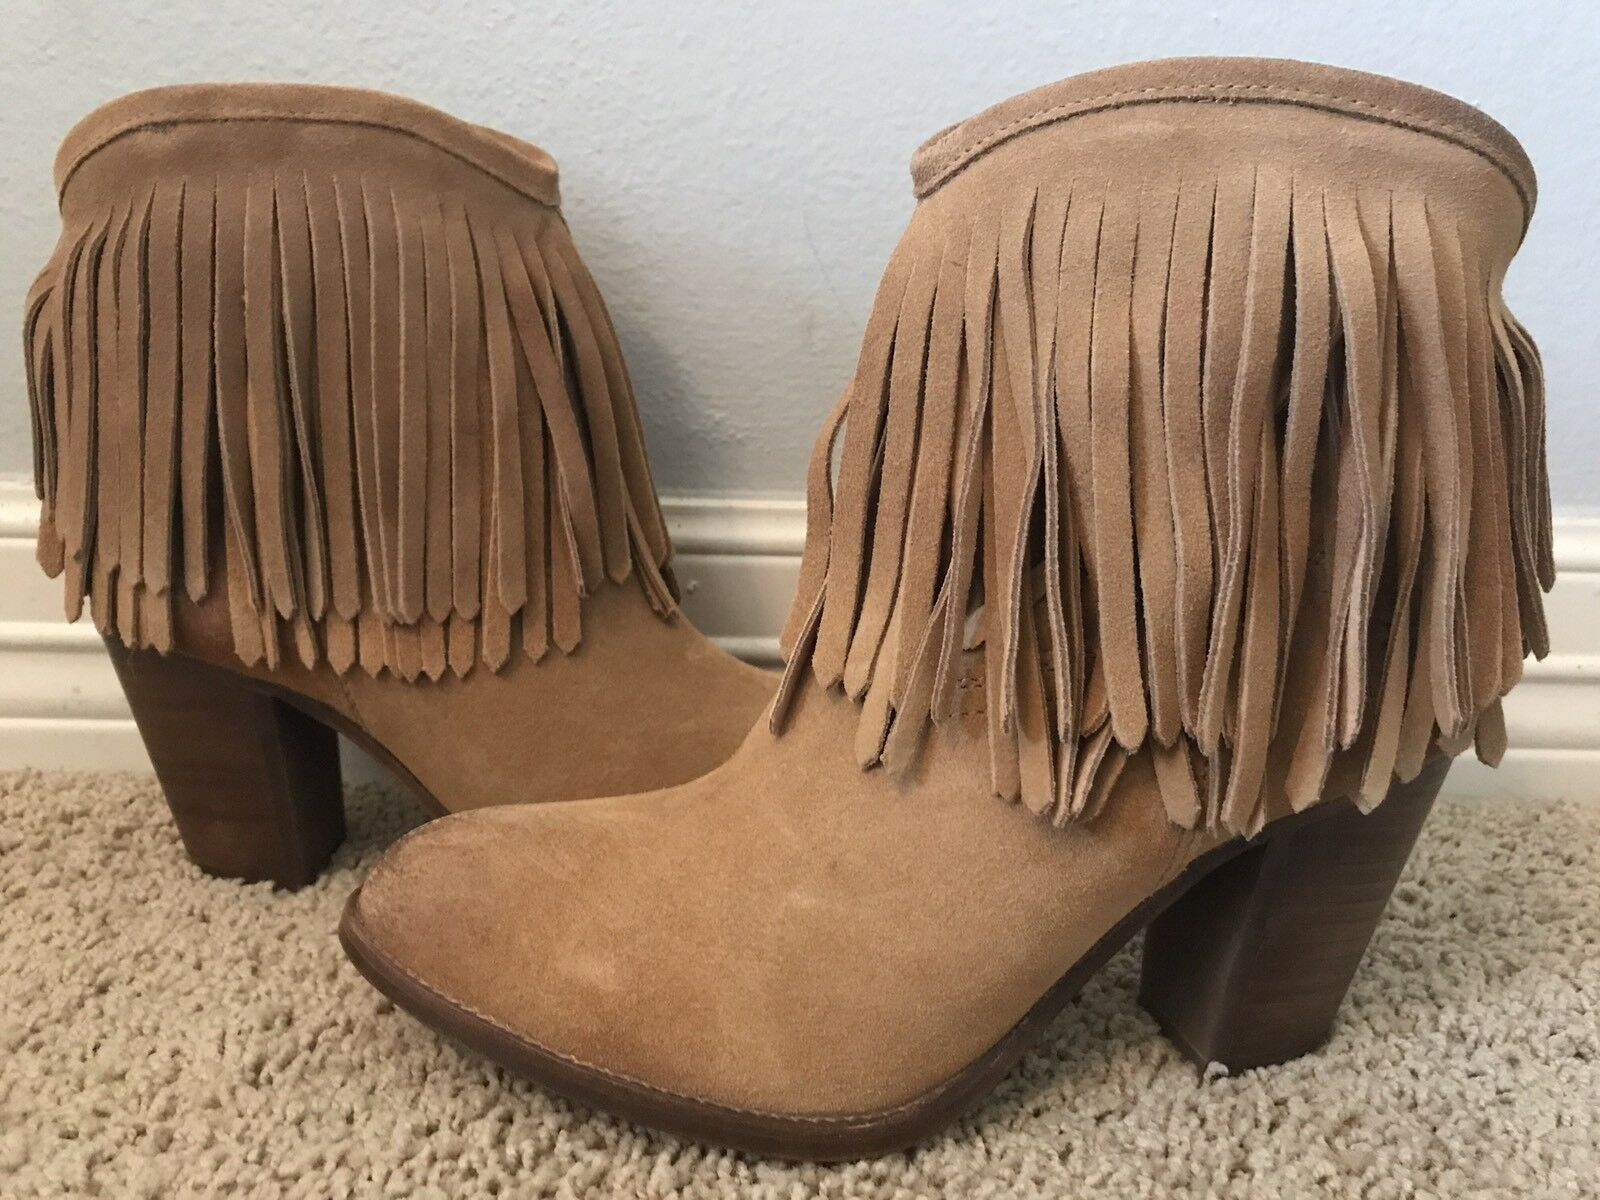 New FRYE Women's Ilana Fringe Short Sand  Leather Suede Suede Suede Boots Sz 8.5  358 c59038